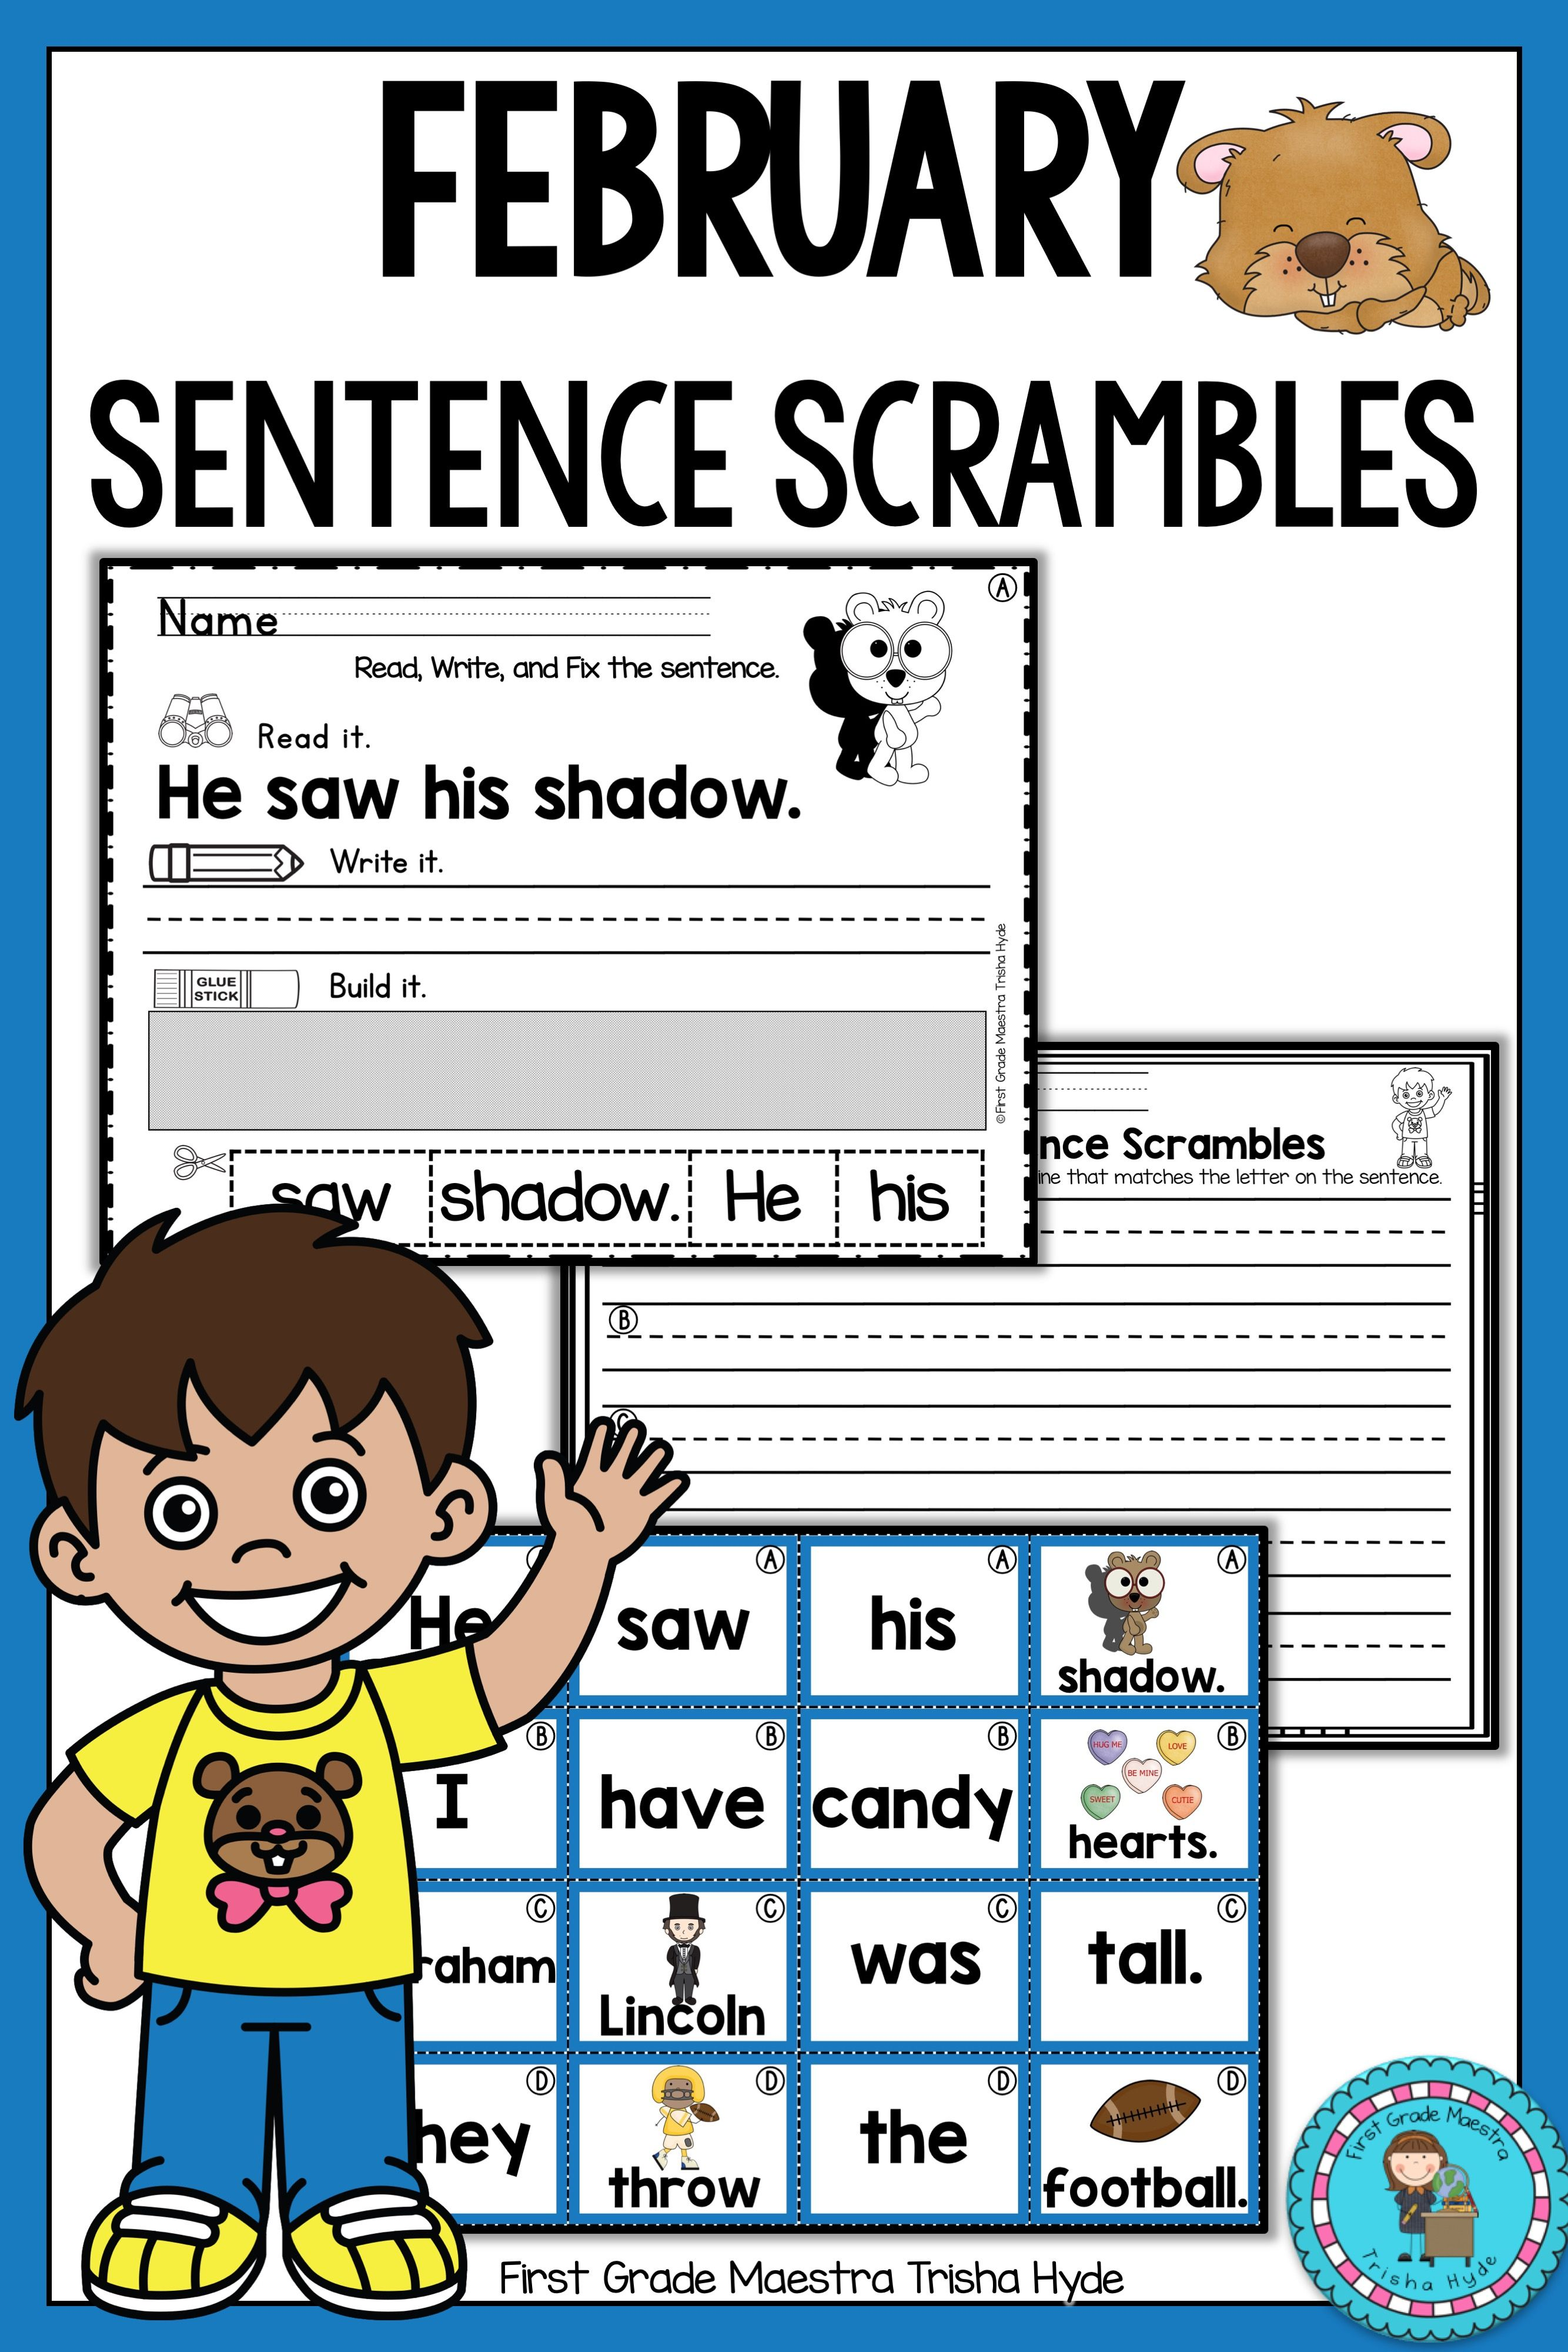 Your Students Will Love These February Sentence Scramble